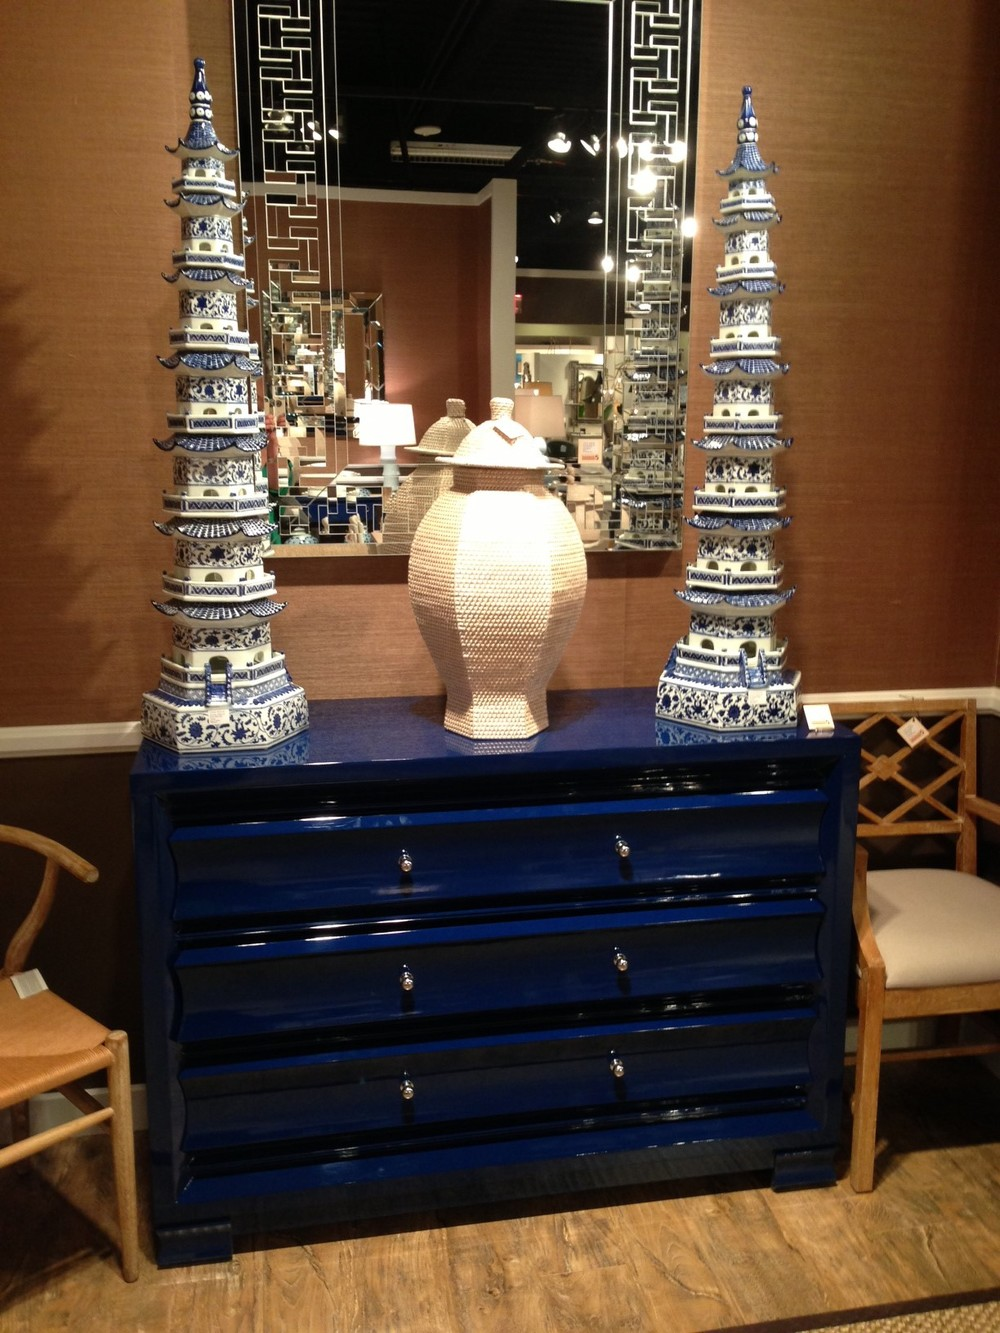 Blue chest by Bungalow 5. | #LVmkt, best, home, decor, furniture, interior design